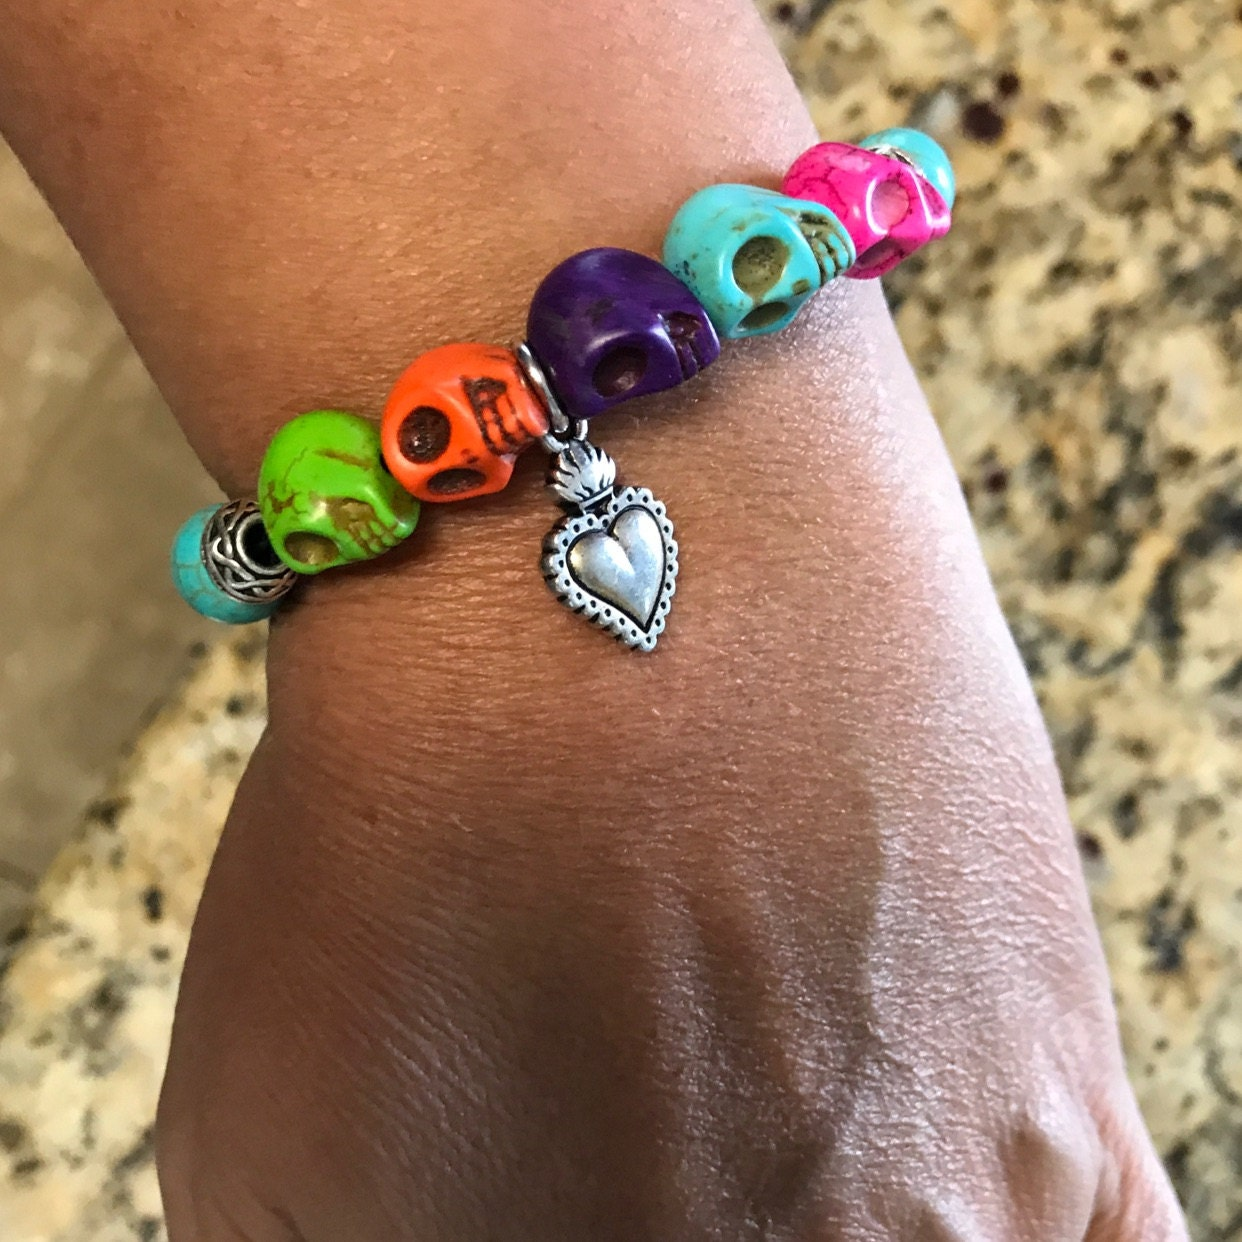 Kimberly Burke added a photo of their purchase